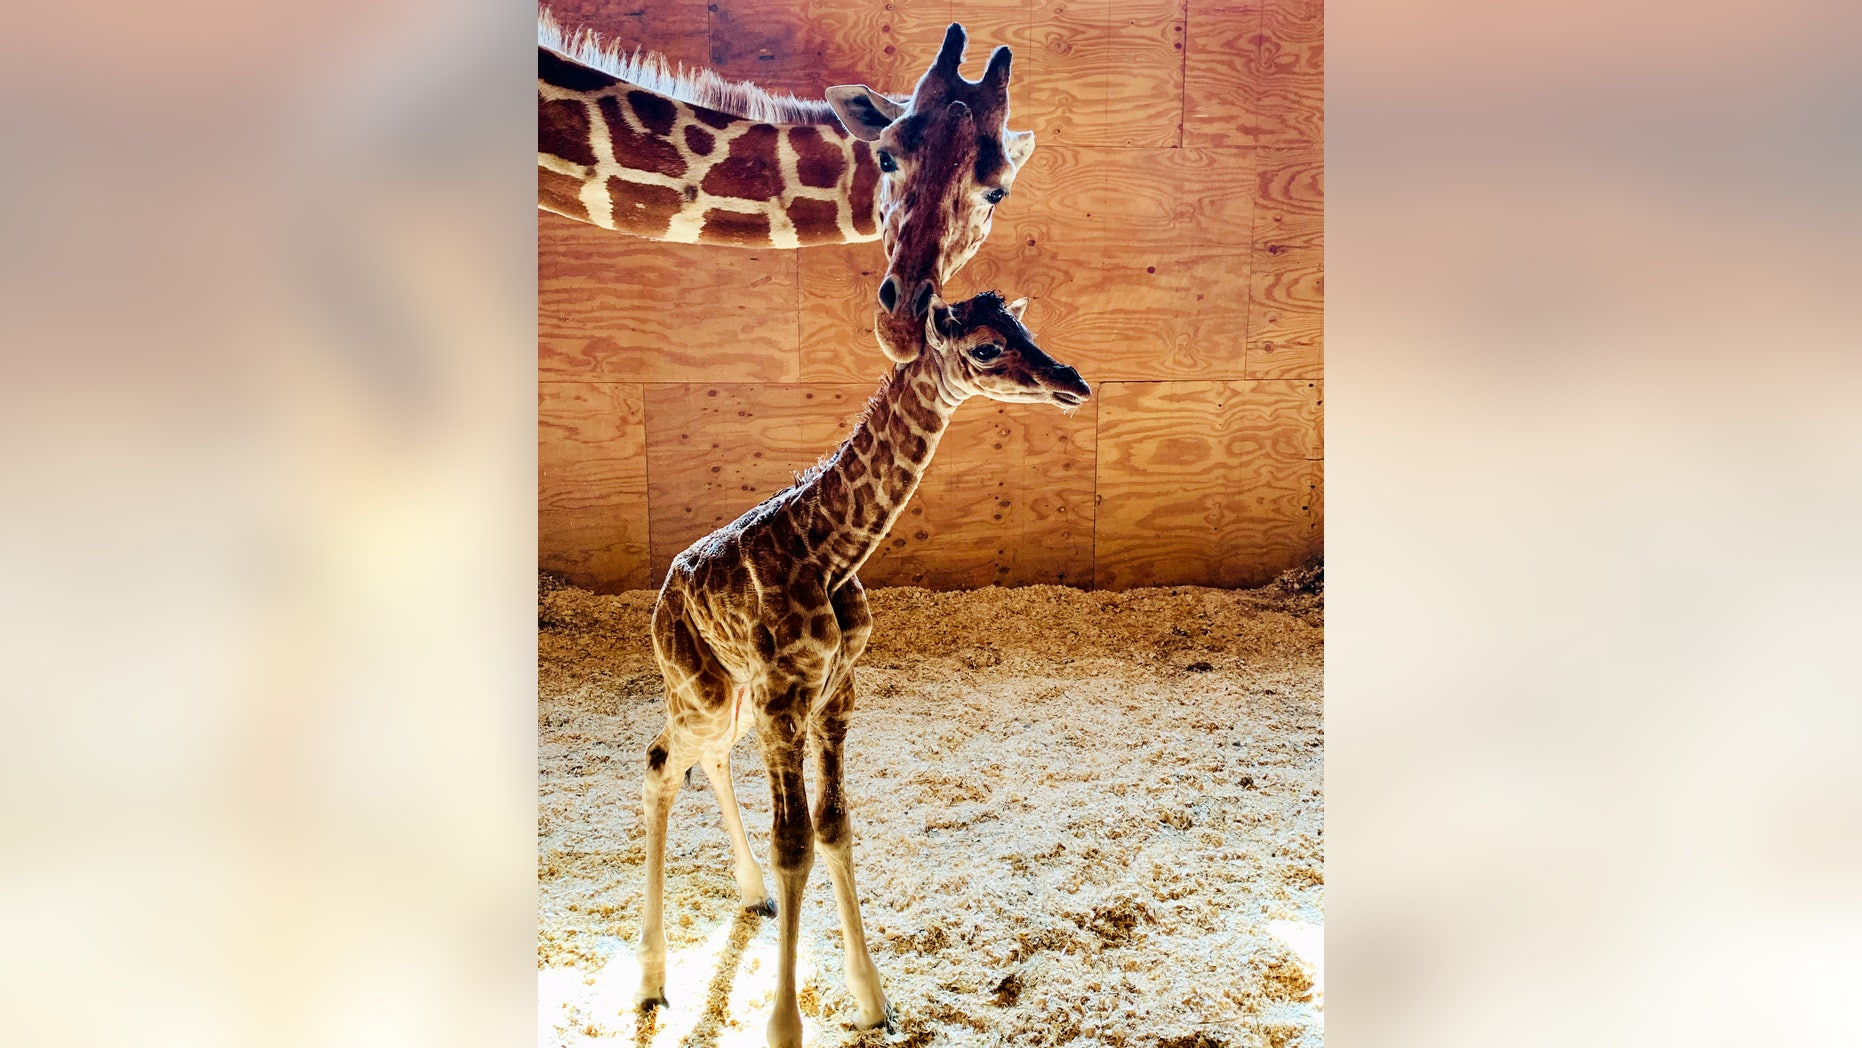 Fans of April the Giraffe are pleased to see the well-known animal greet a baby on Saturday, Park officials said.